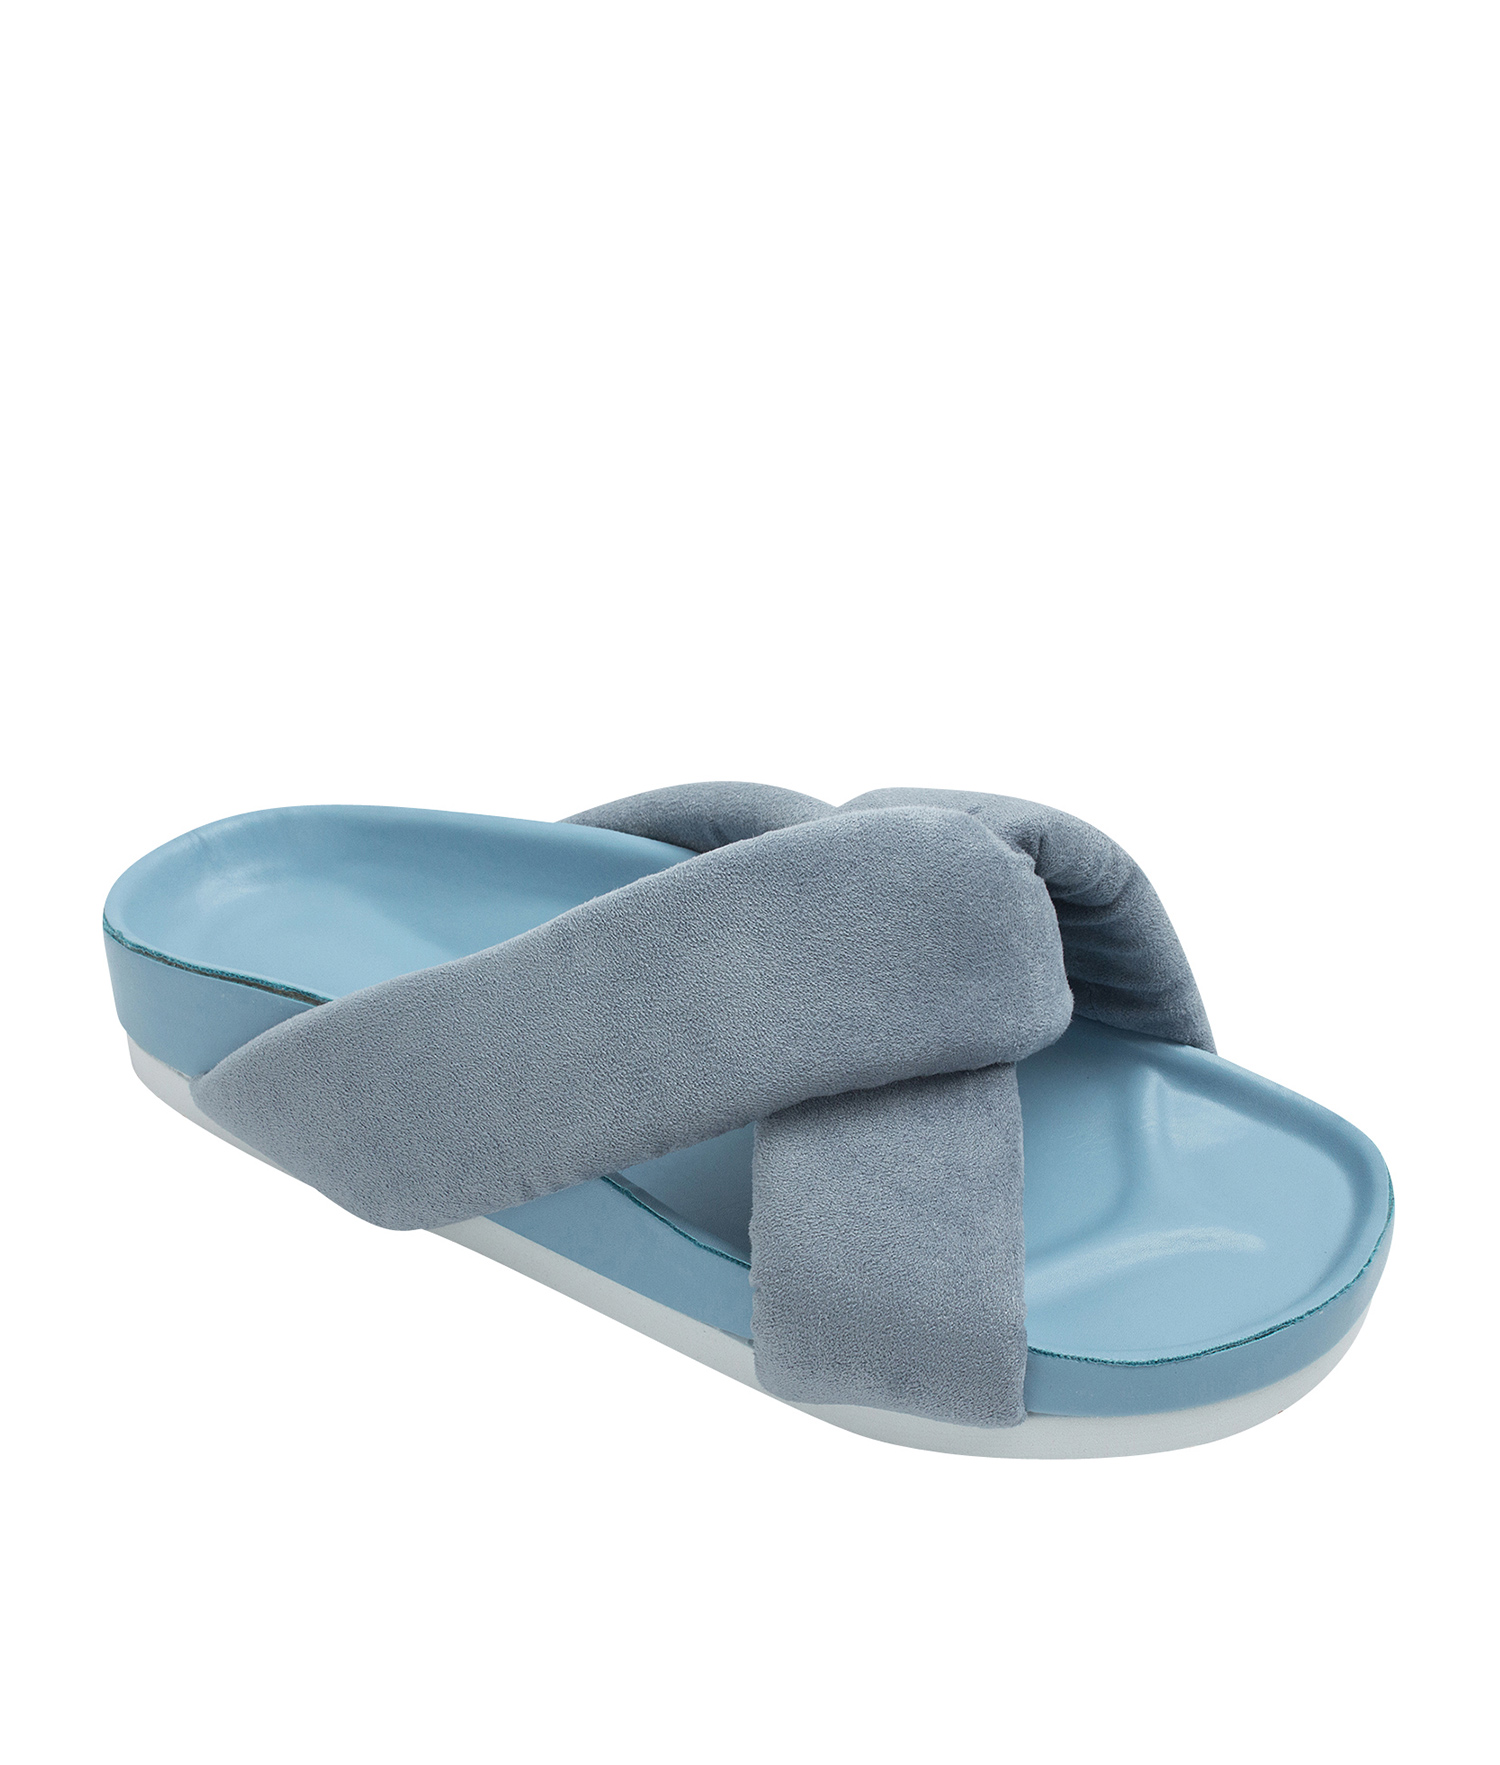 AnnaKastle Womens Cushioned Criss Cross Slides Light Blue